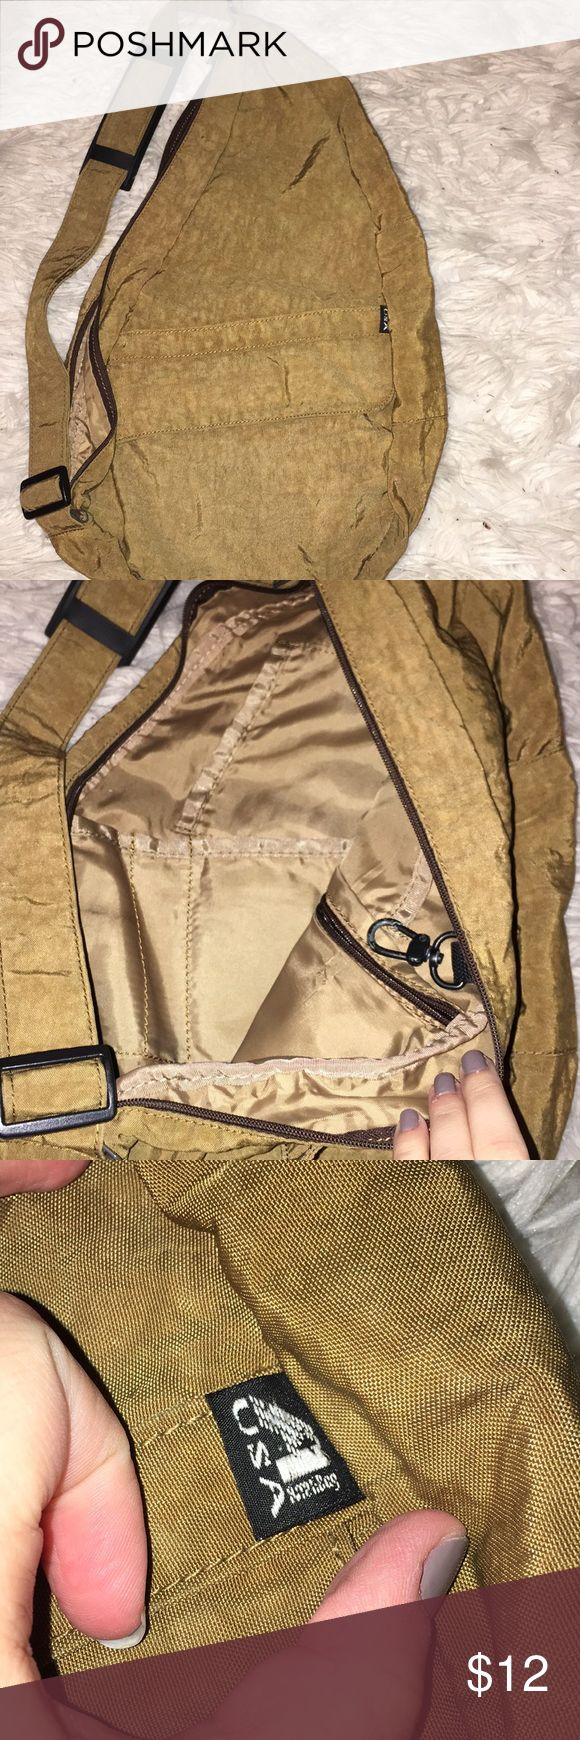 USA sling bag Sling bag like a Kavu (vintage) no flaws super cute can hold tons of stuff Used a few times  No flaws Smoke free home Urban Outfitters Bags Crossbody Bags